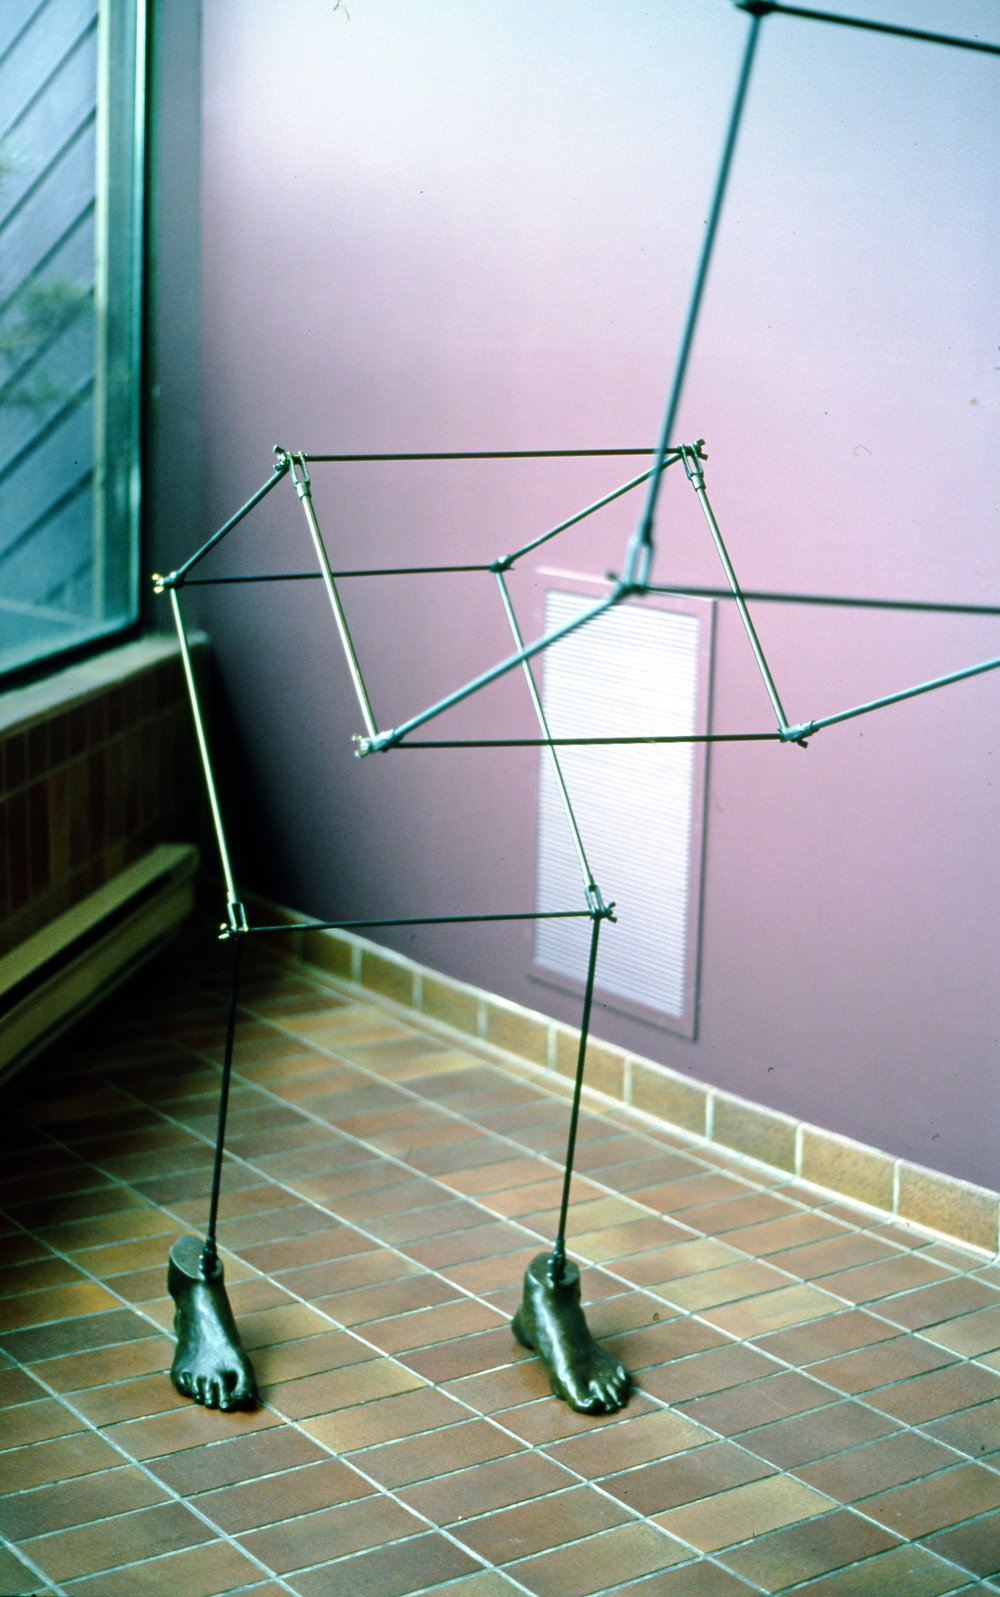 "Unfolding,  2001, Kip Jones, steel and bronze, 7' x 3' x 6"", 2002.04.01, gift of the artist"